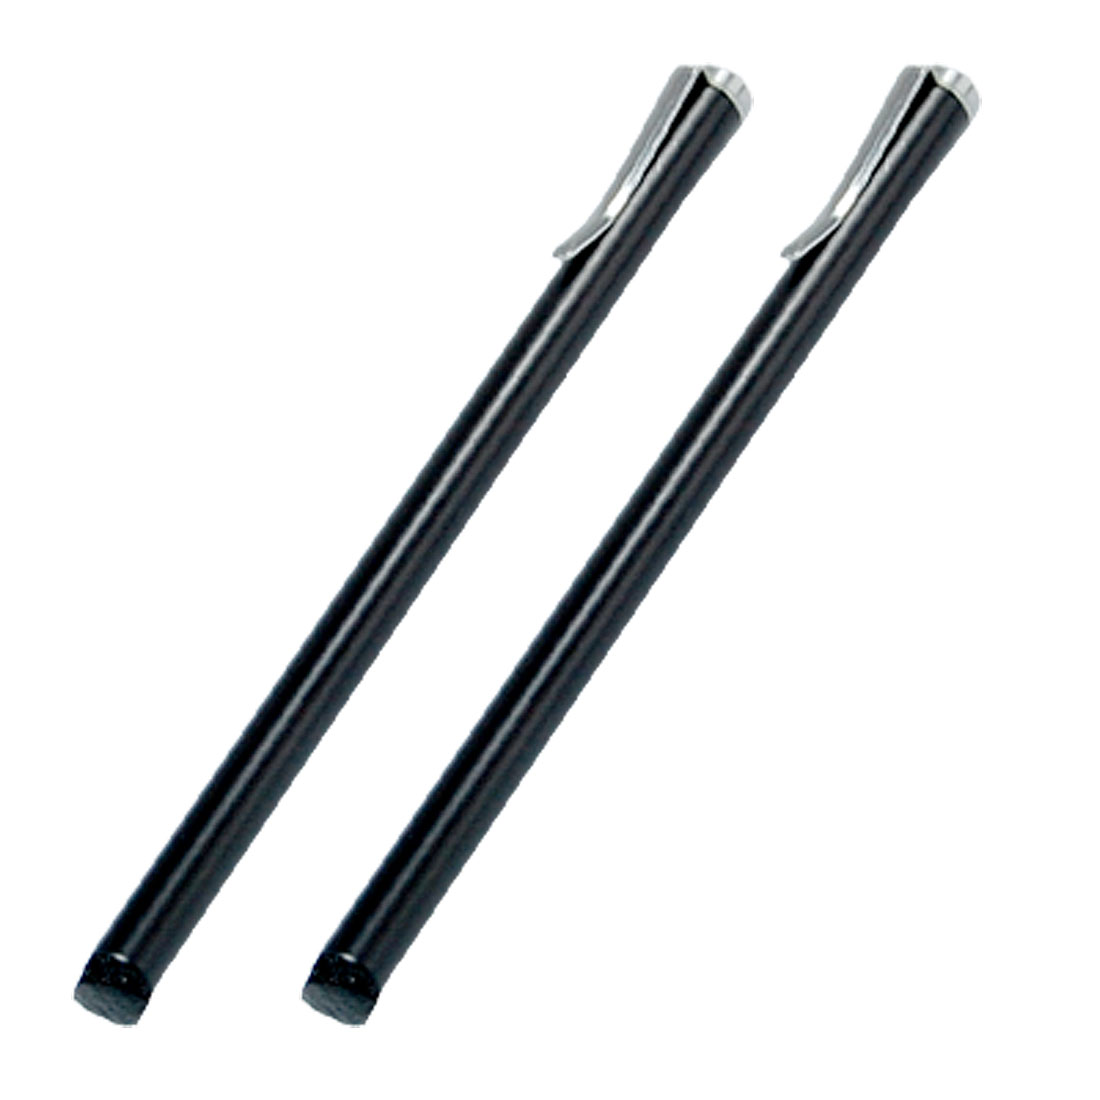 "4"" Compact Black Stylus Pen 2pcs for Mobile Phone"